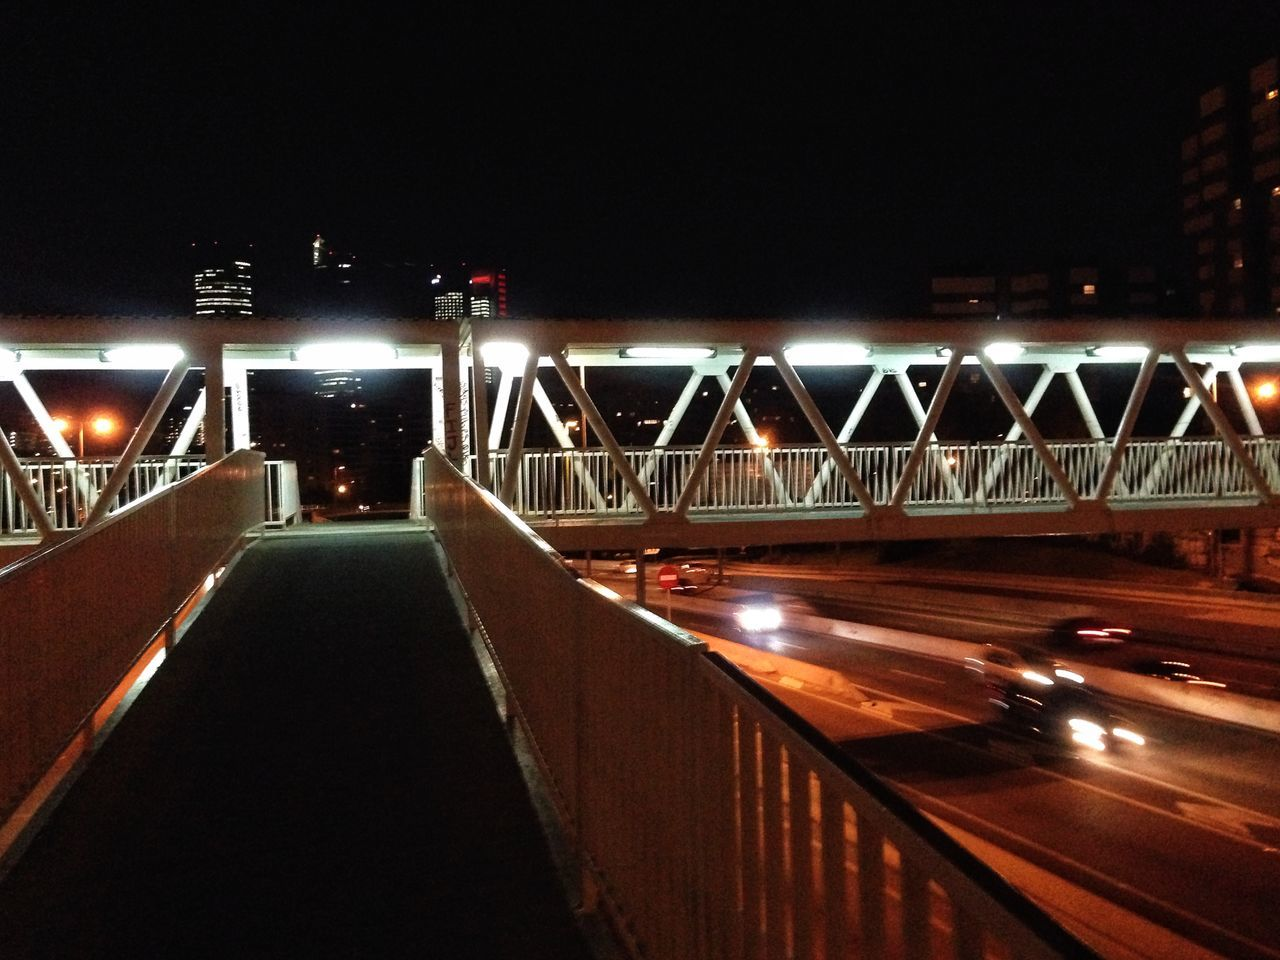 illuminated, night, transportation, bridge - man made structure, the way forward, architecture, street light, bridge, lighting equipment, built structure, speed, connection, motion, road, light trail, outdoors, no people, high street, city, sky